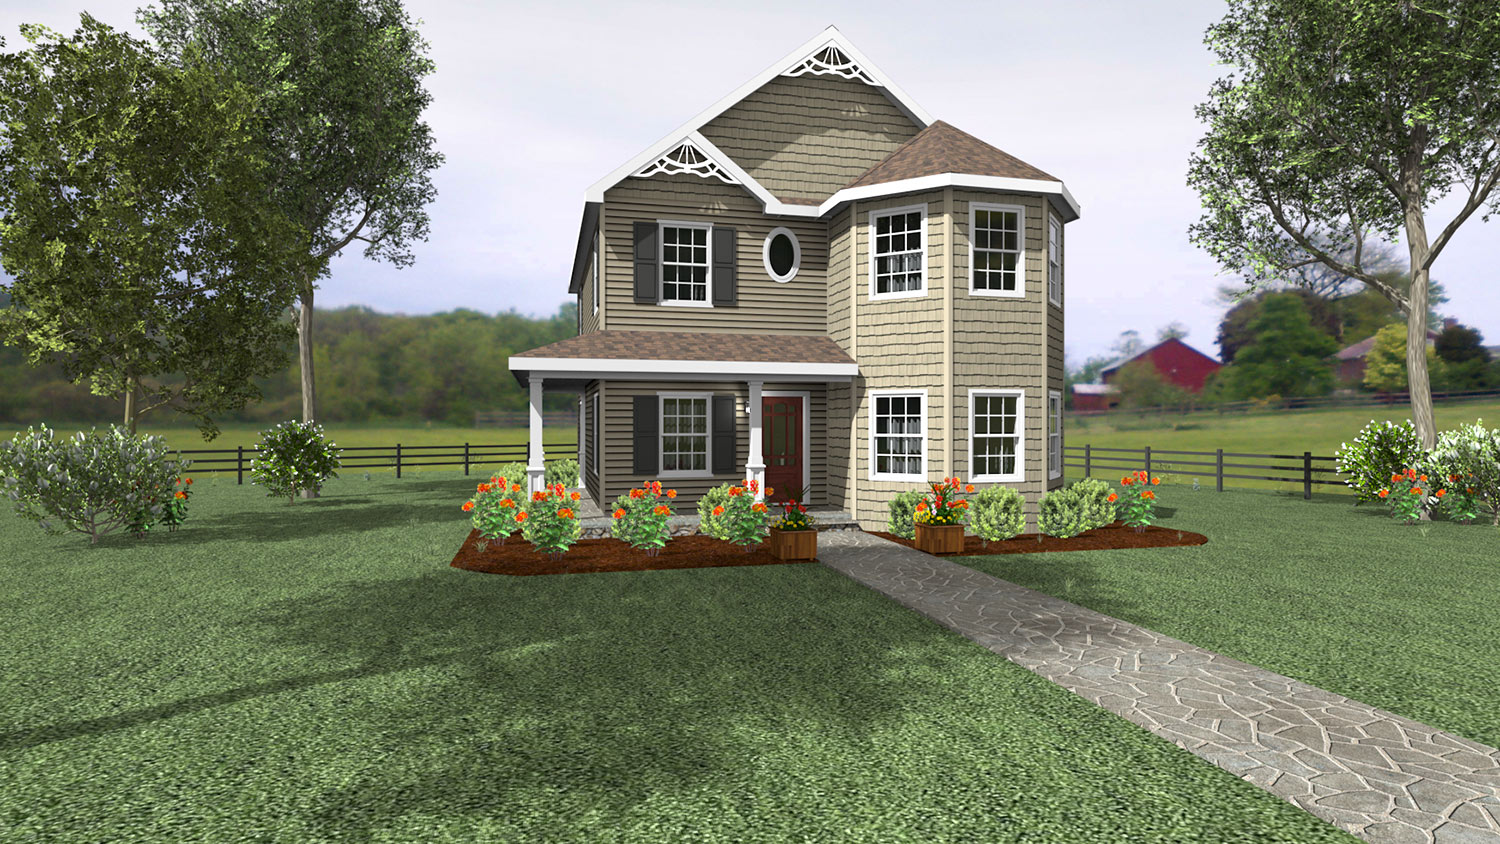 2S101 Glenco Inc Two Store Home Front Rendering